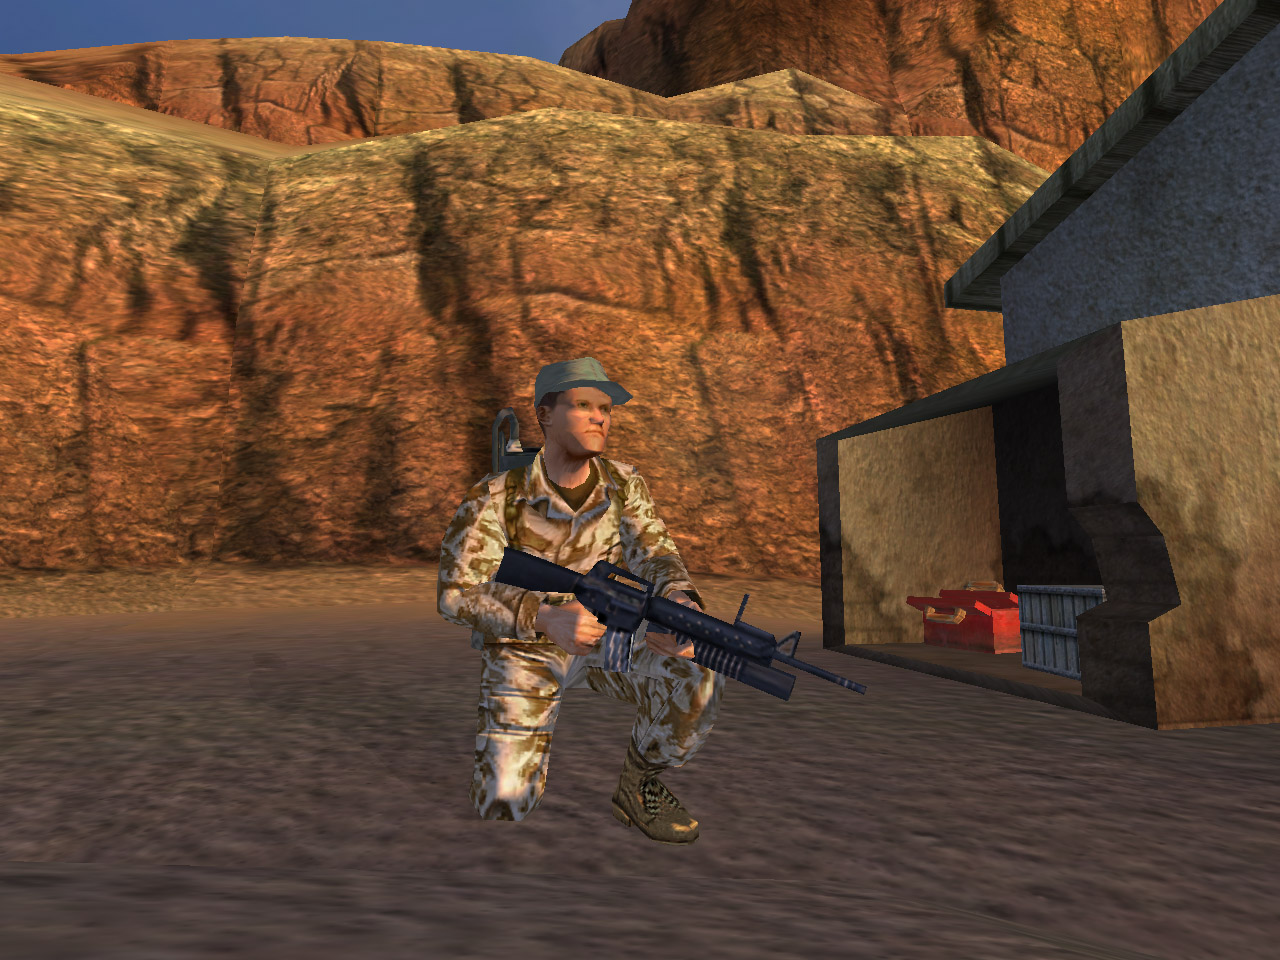 conflict desert storm 2 game - free download full version for pc